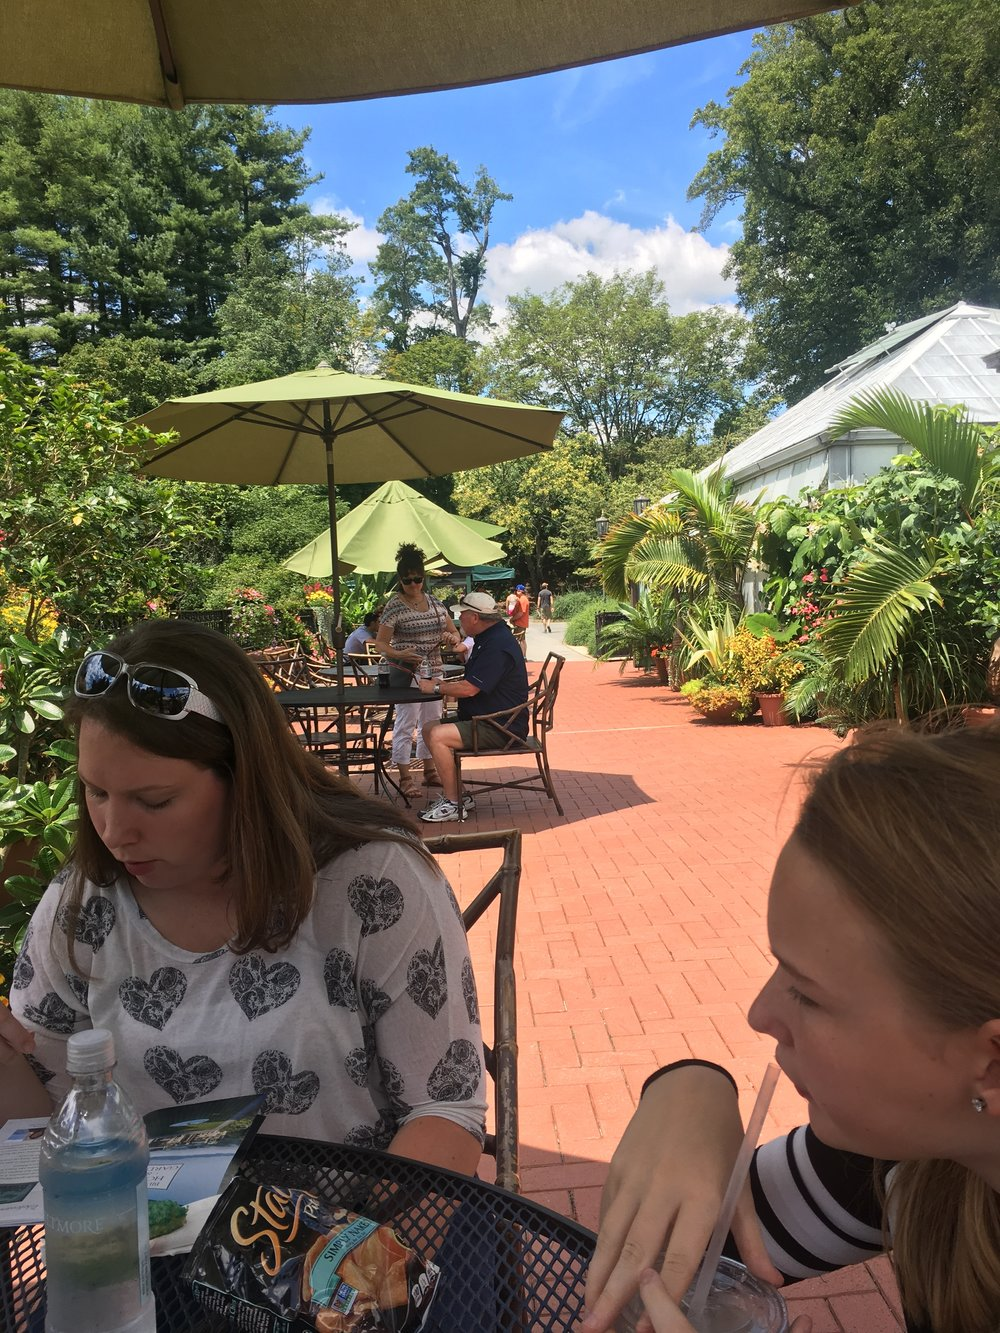 Lunch at The Conservatory